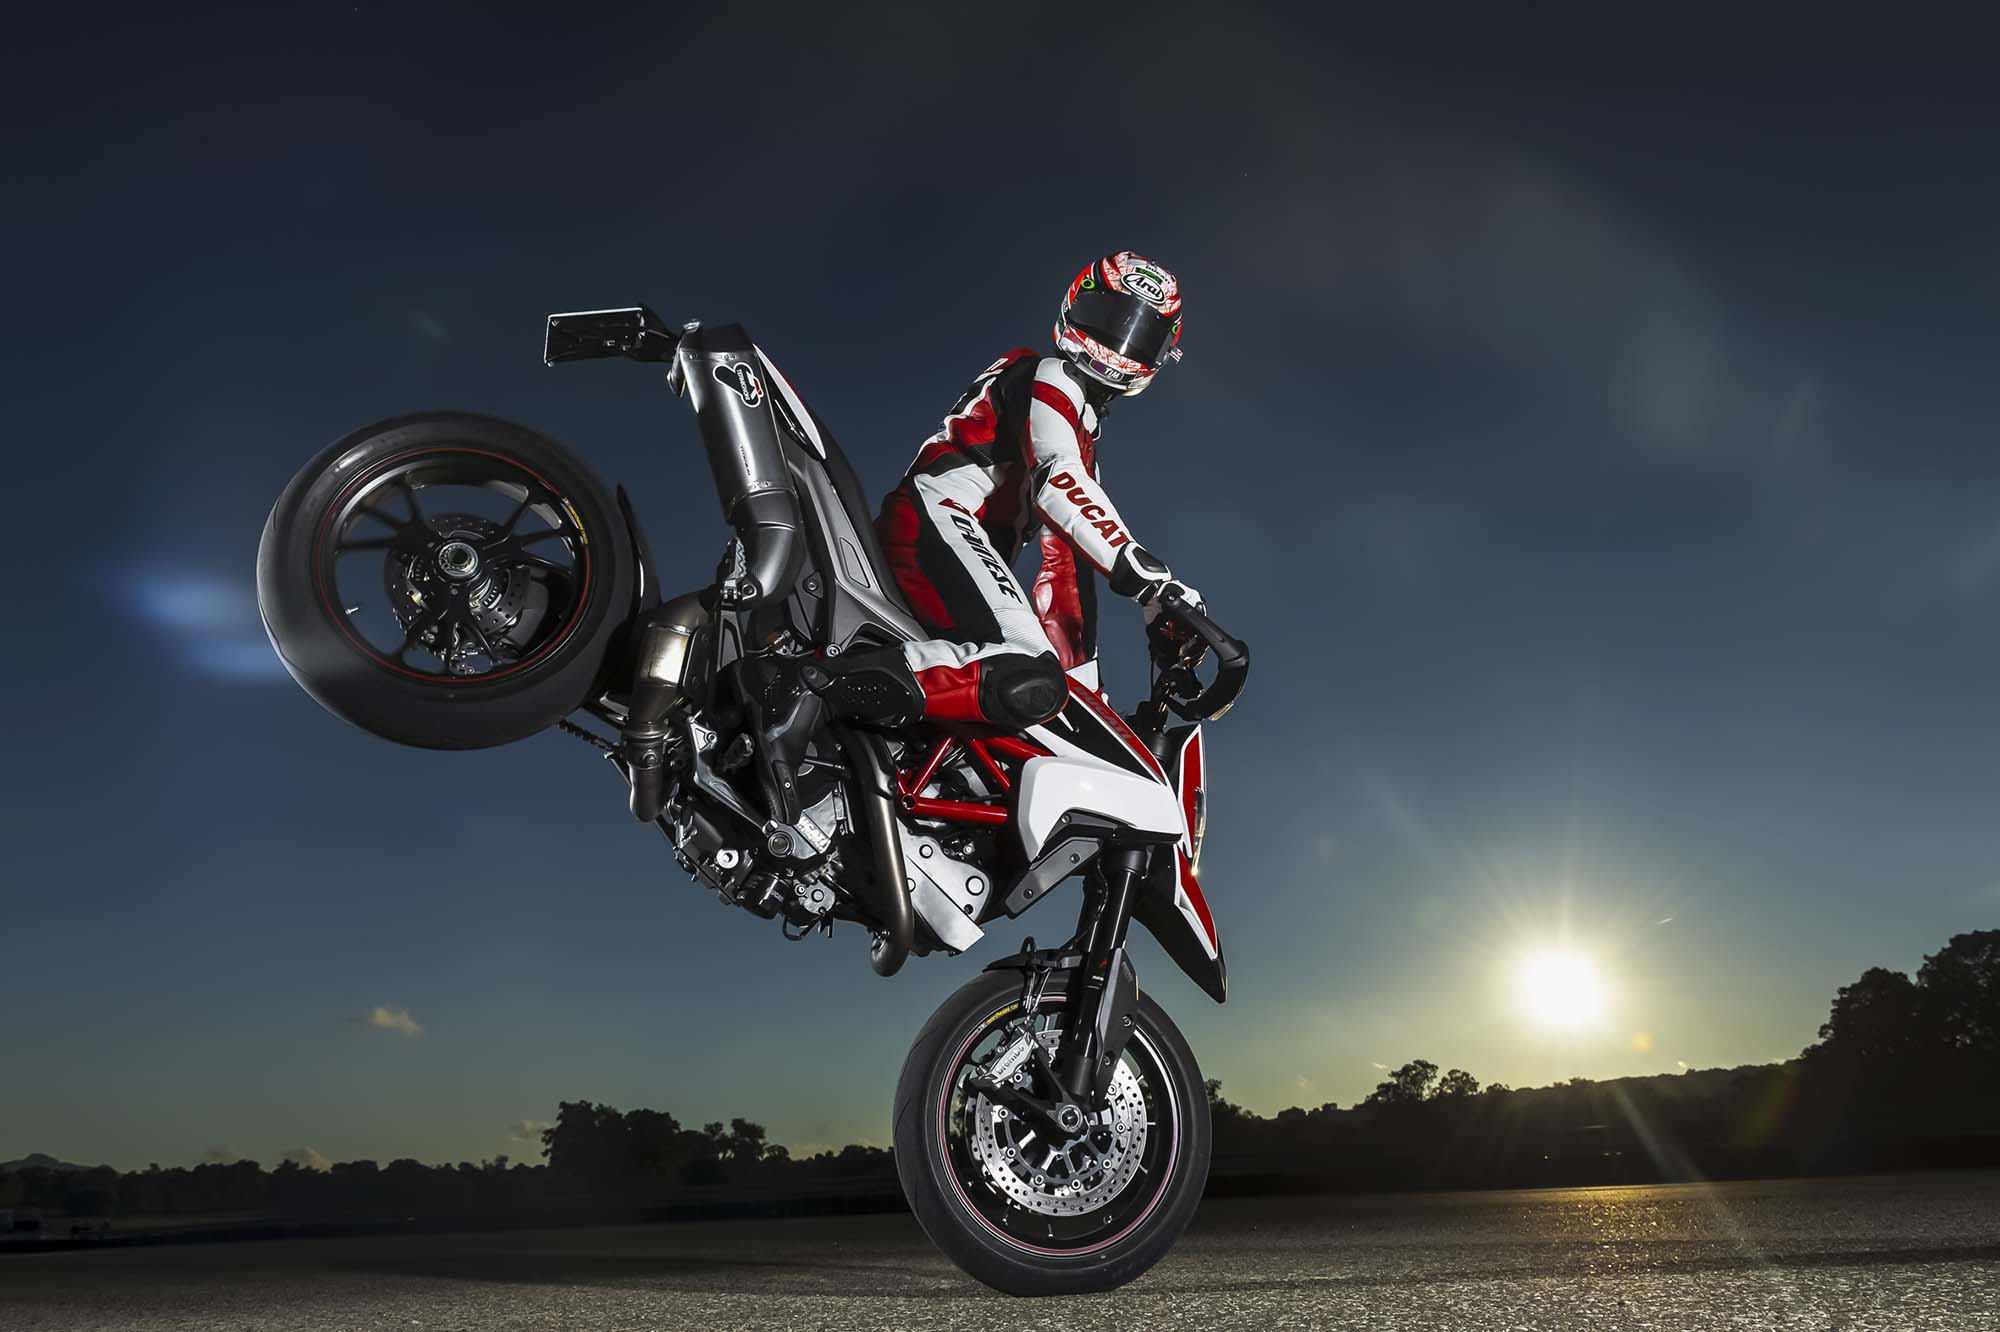 Reef Girl Wallpaper 2013 Ducati Hypermotard Official Pictures Show An Awesome